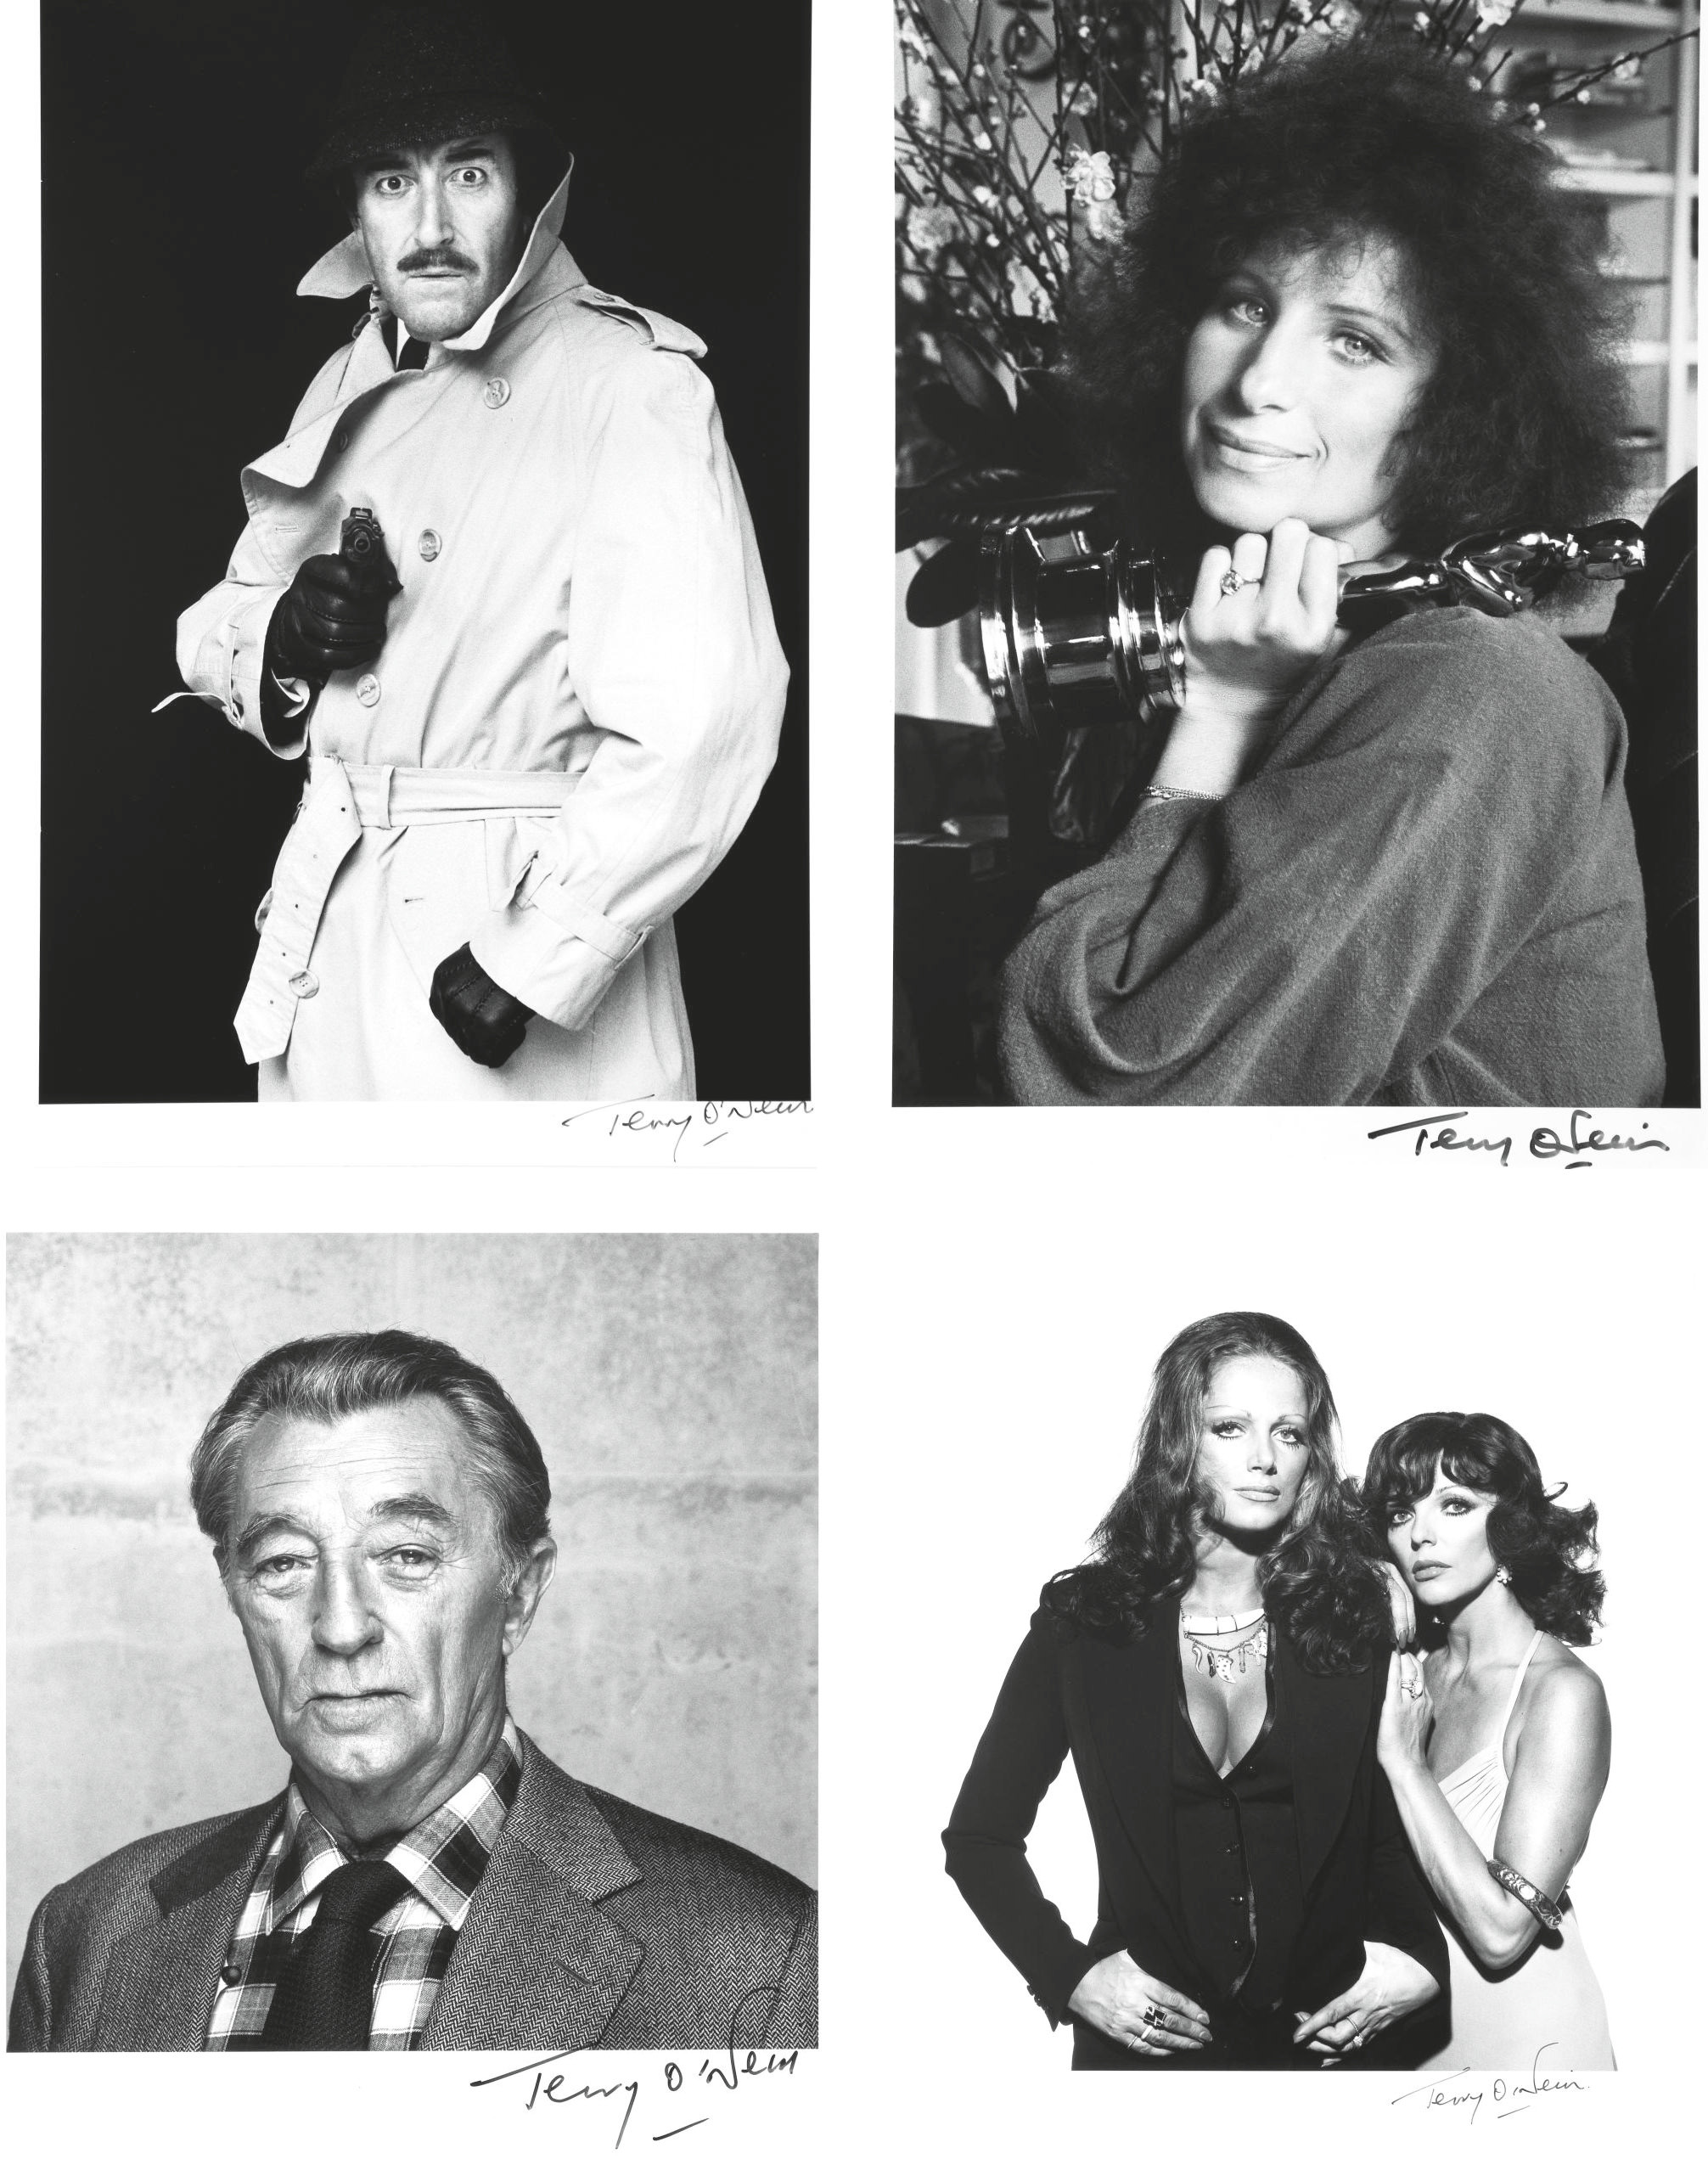 Jackie and Joan Collins, c. 1970, Peter Sellers, 1976, Barbra Streisand, 1976 and Robert Mitchum, 1984